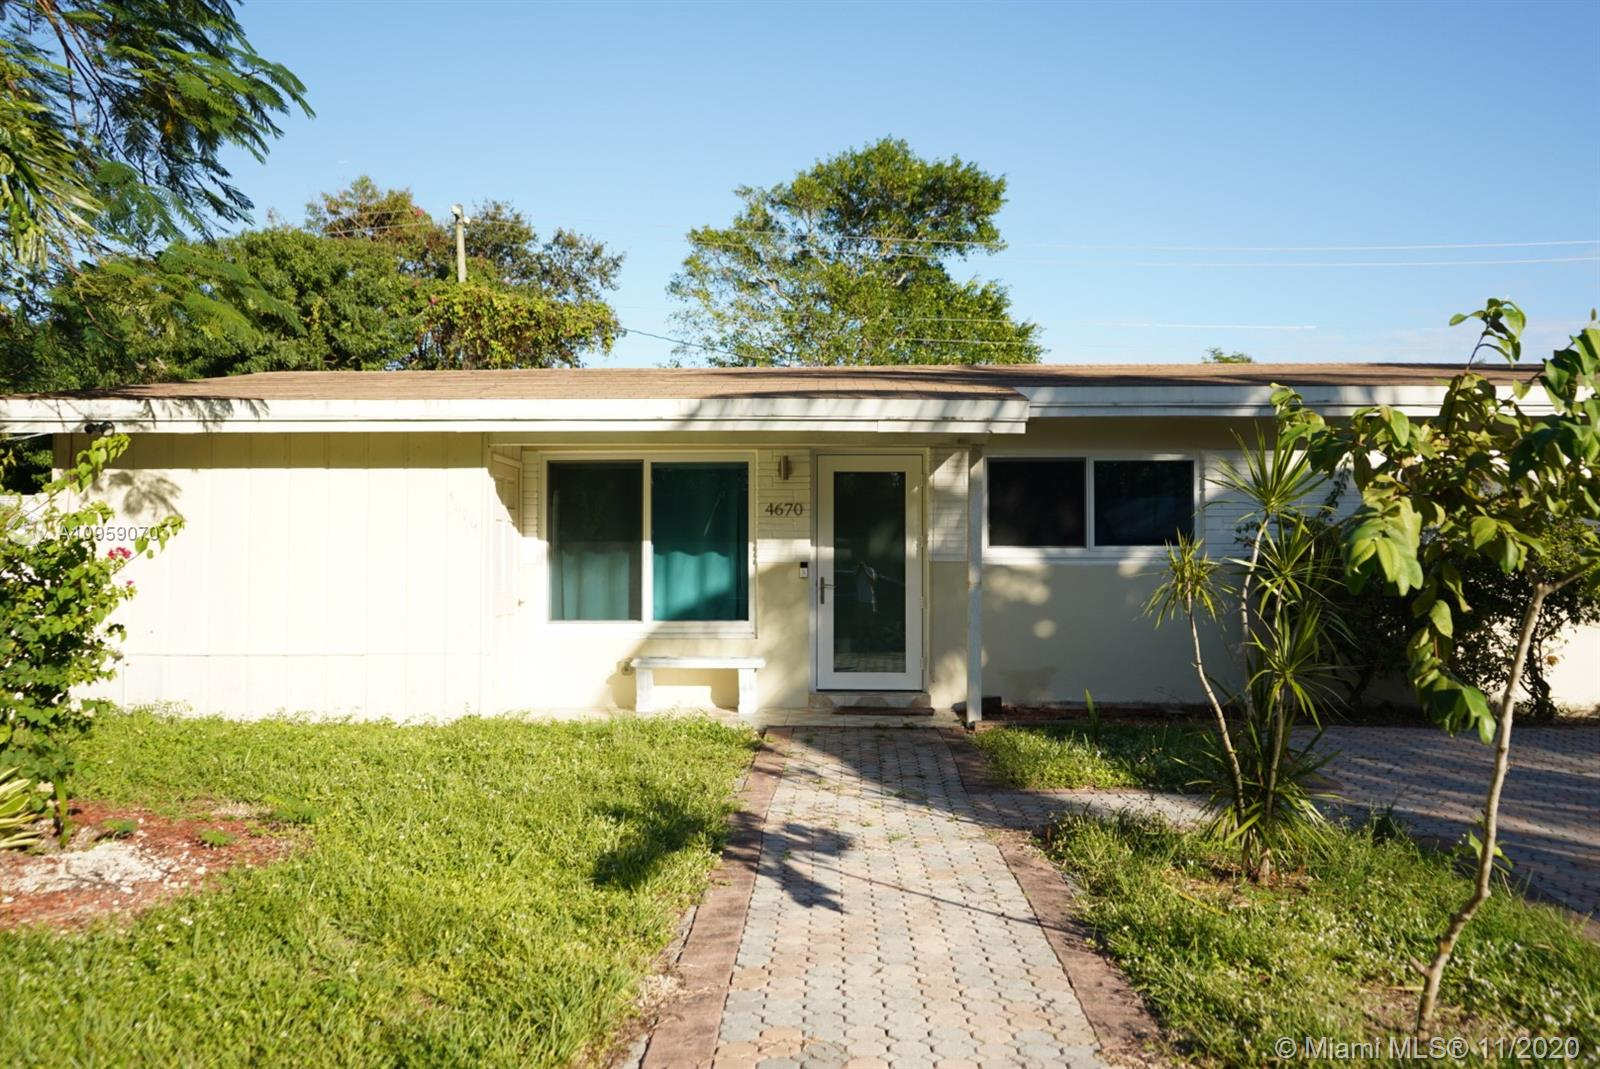 Beautiful Home located 10-15 minutes away from Dania Beach. NEW Kitchen, Large Tile Floors, Roof, High Impact Hurricane proof windows and Entrance Door (less than 2 years old). Plumbing has been updated to PVC. 4 Bedrooms, 2 Bathrooms and Laundry Room. Large Yard space with sheltered porch area and an additional shed perfect for storage or workshop area!  #4 Bedroom has separate entrance door and bathroom.